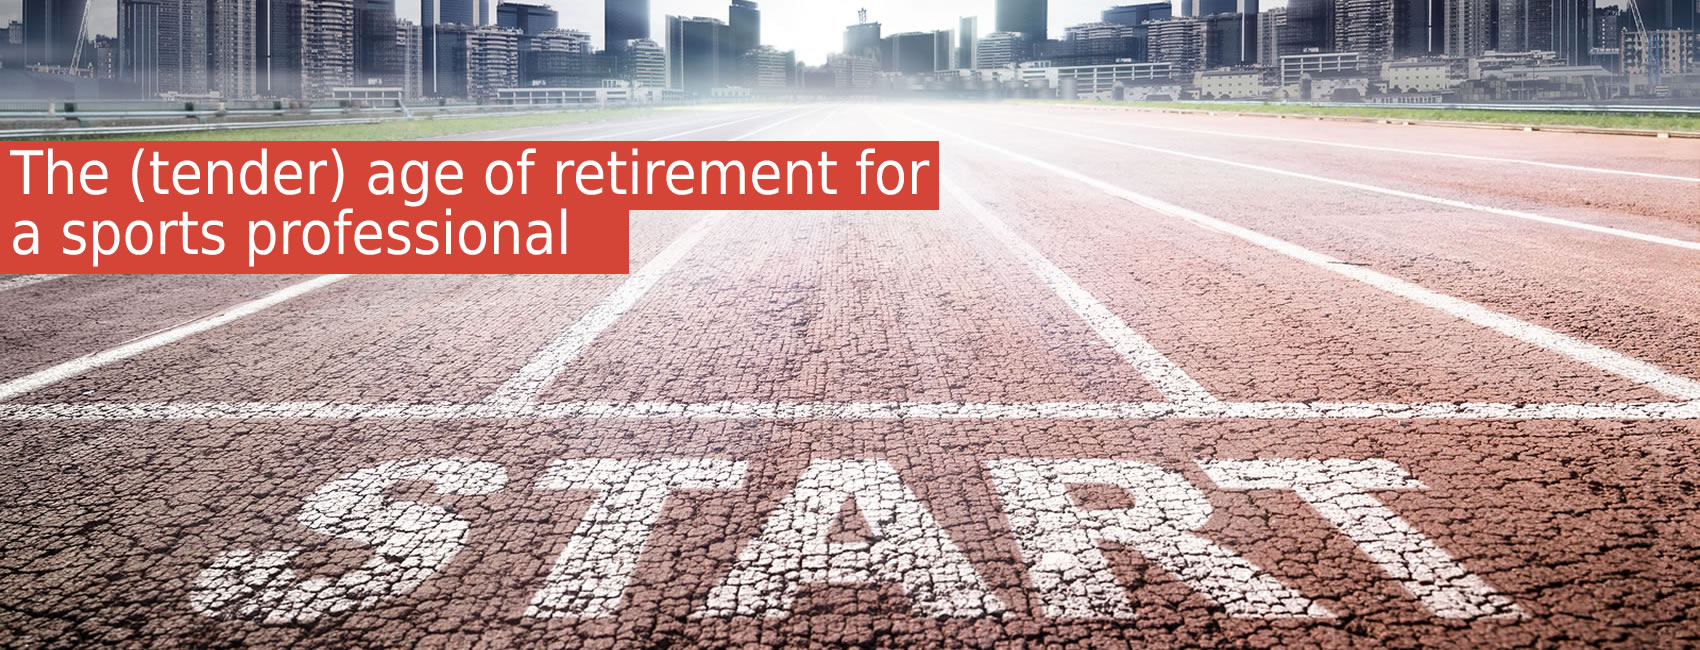 The (tender) age of retirement for a sports professional Image source: Bigstockphoto Image Credit and Copyright: © R_Tavani